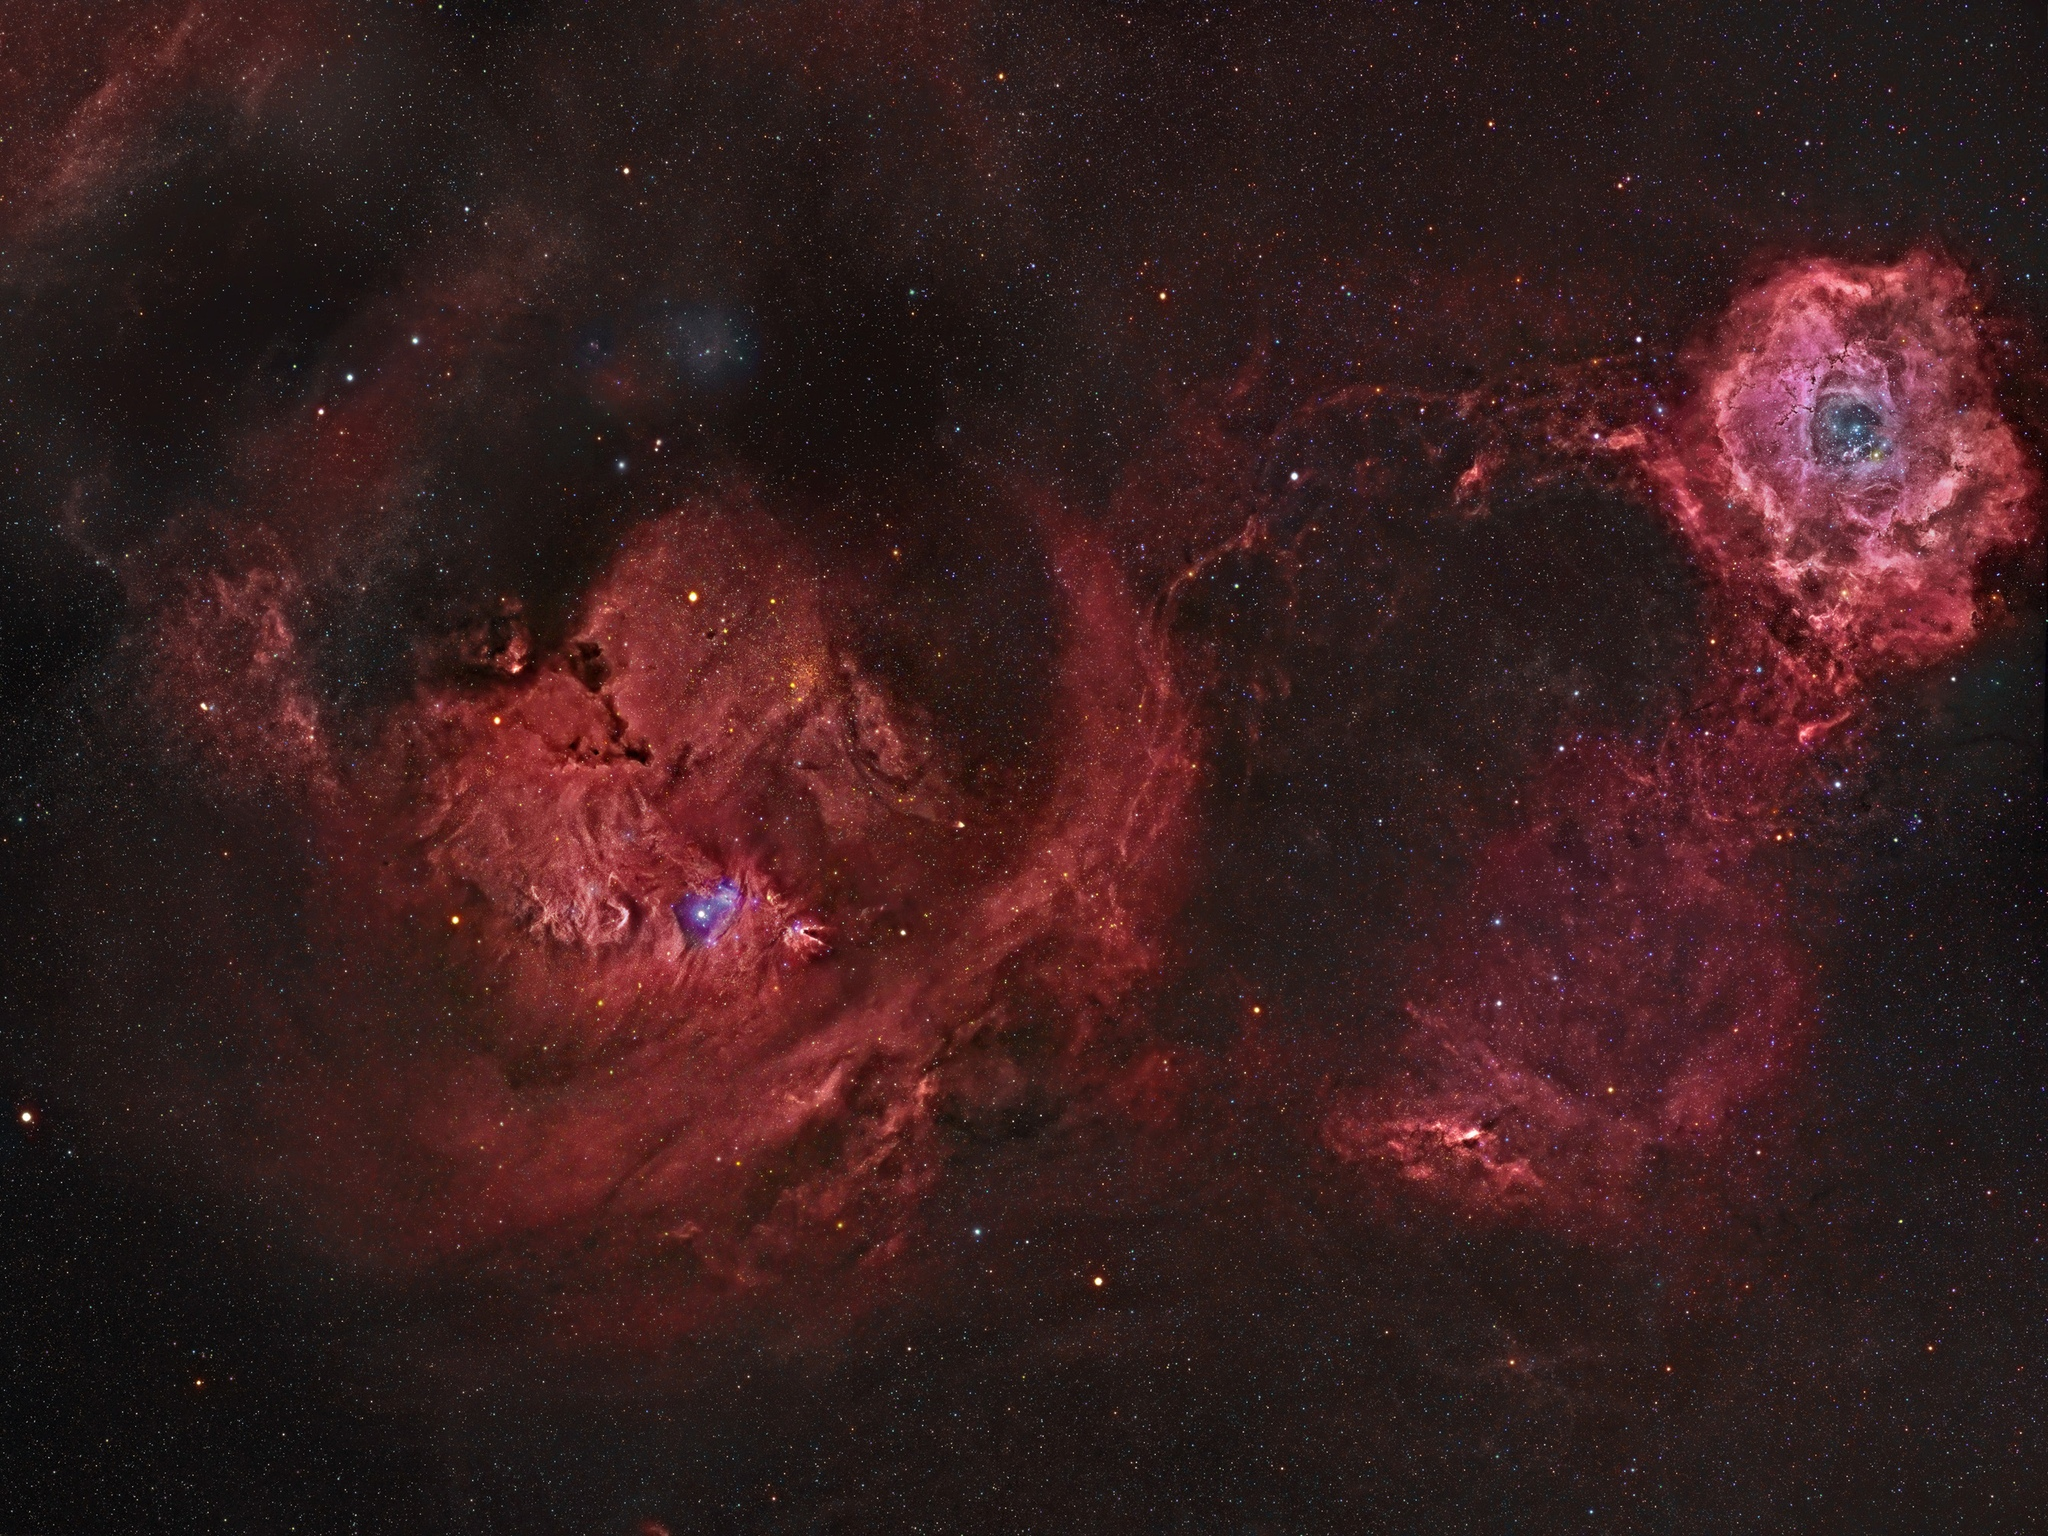 2048x1536 space nebula - photo #1